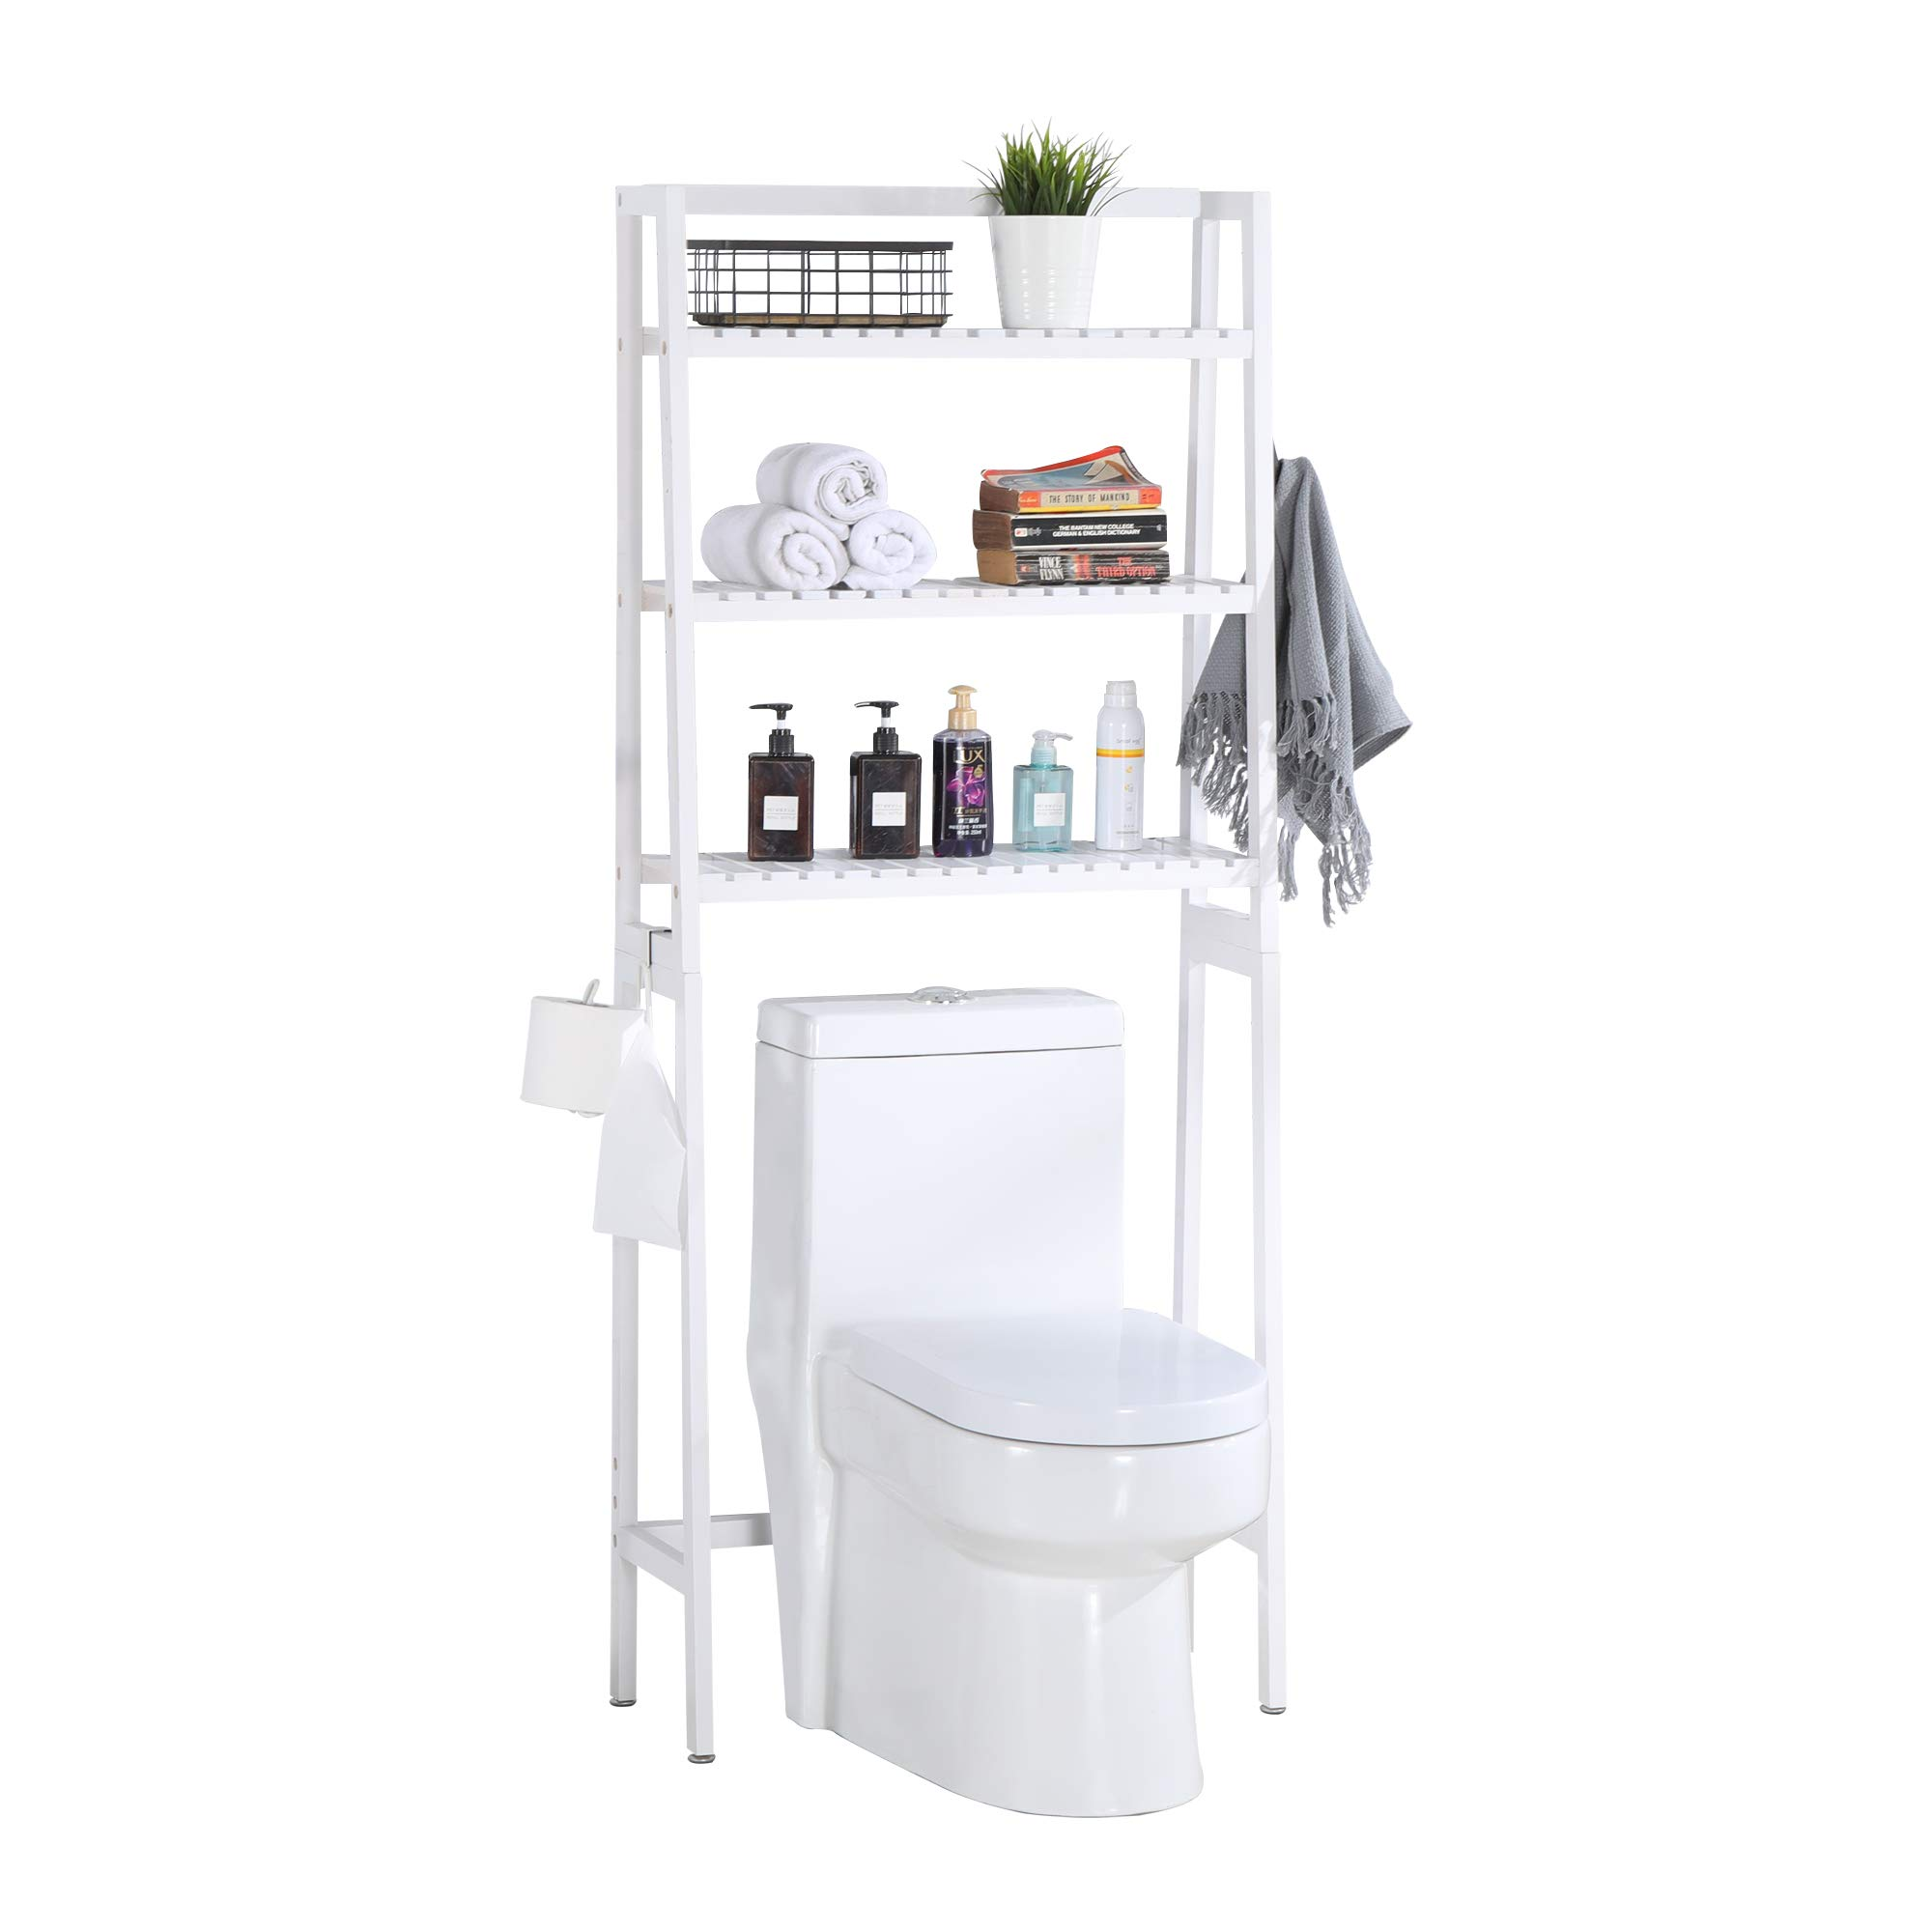 MallBoo Toilet Storage Rack, 3 -Tier Over-The-Toilet Bathroom Spacesaver - 100% Wood and Easy to Assemble (Classic White)